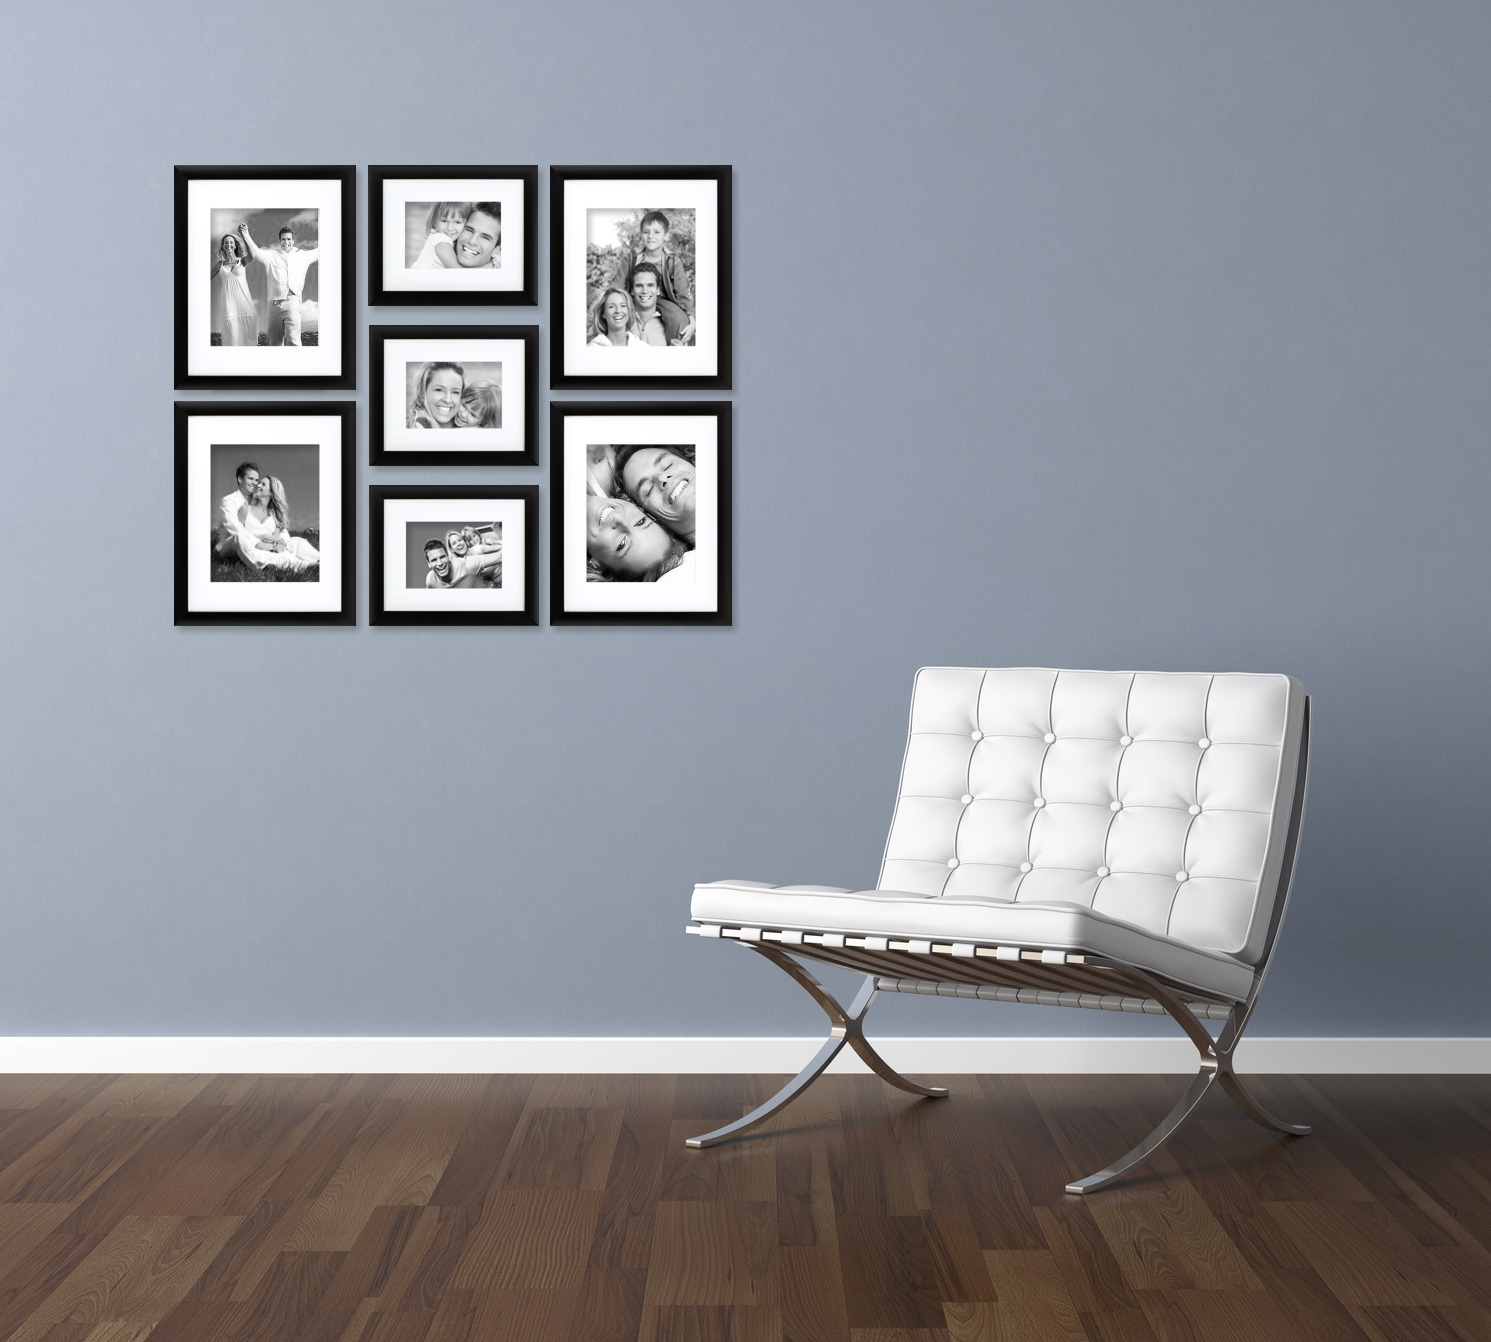 craig frames 7 piece black gallery wall frame set with glass white matting 765293534716 ebay. Black Bedroom Furniture Sets. Home Design Ideas